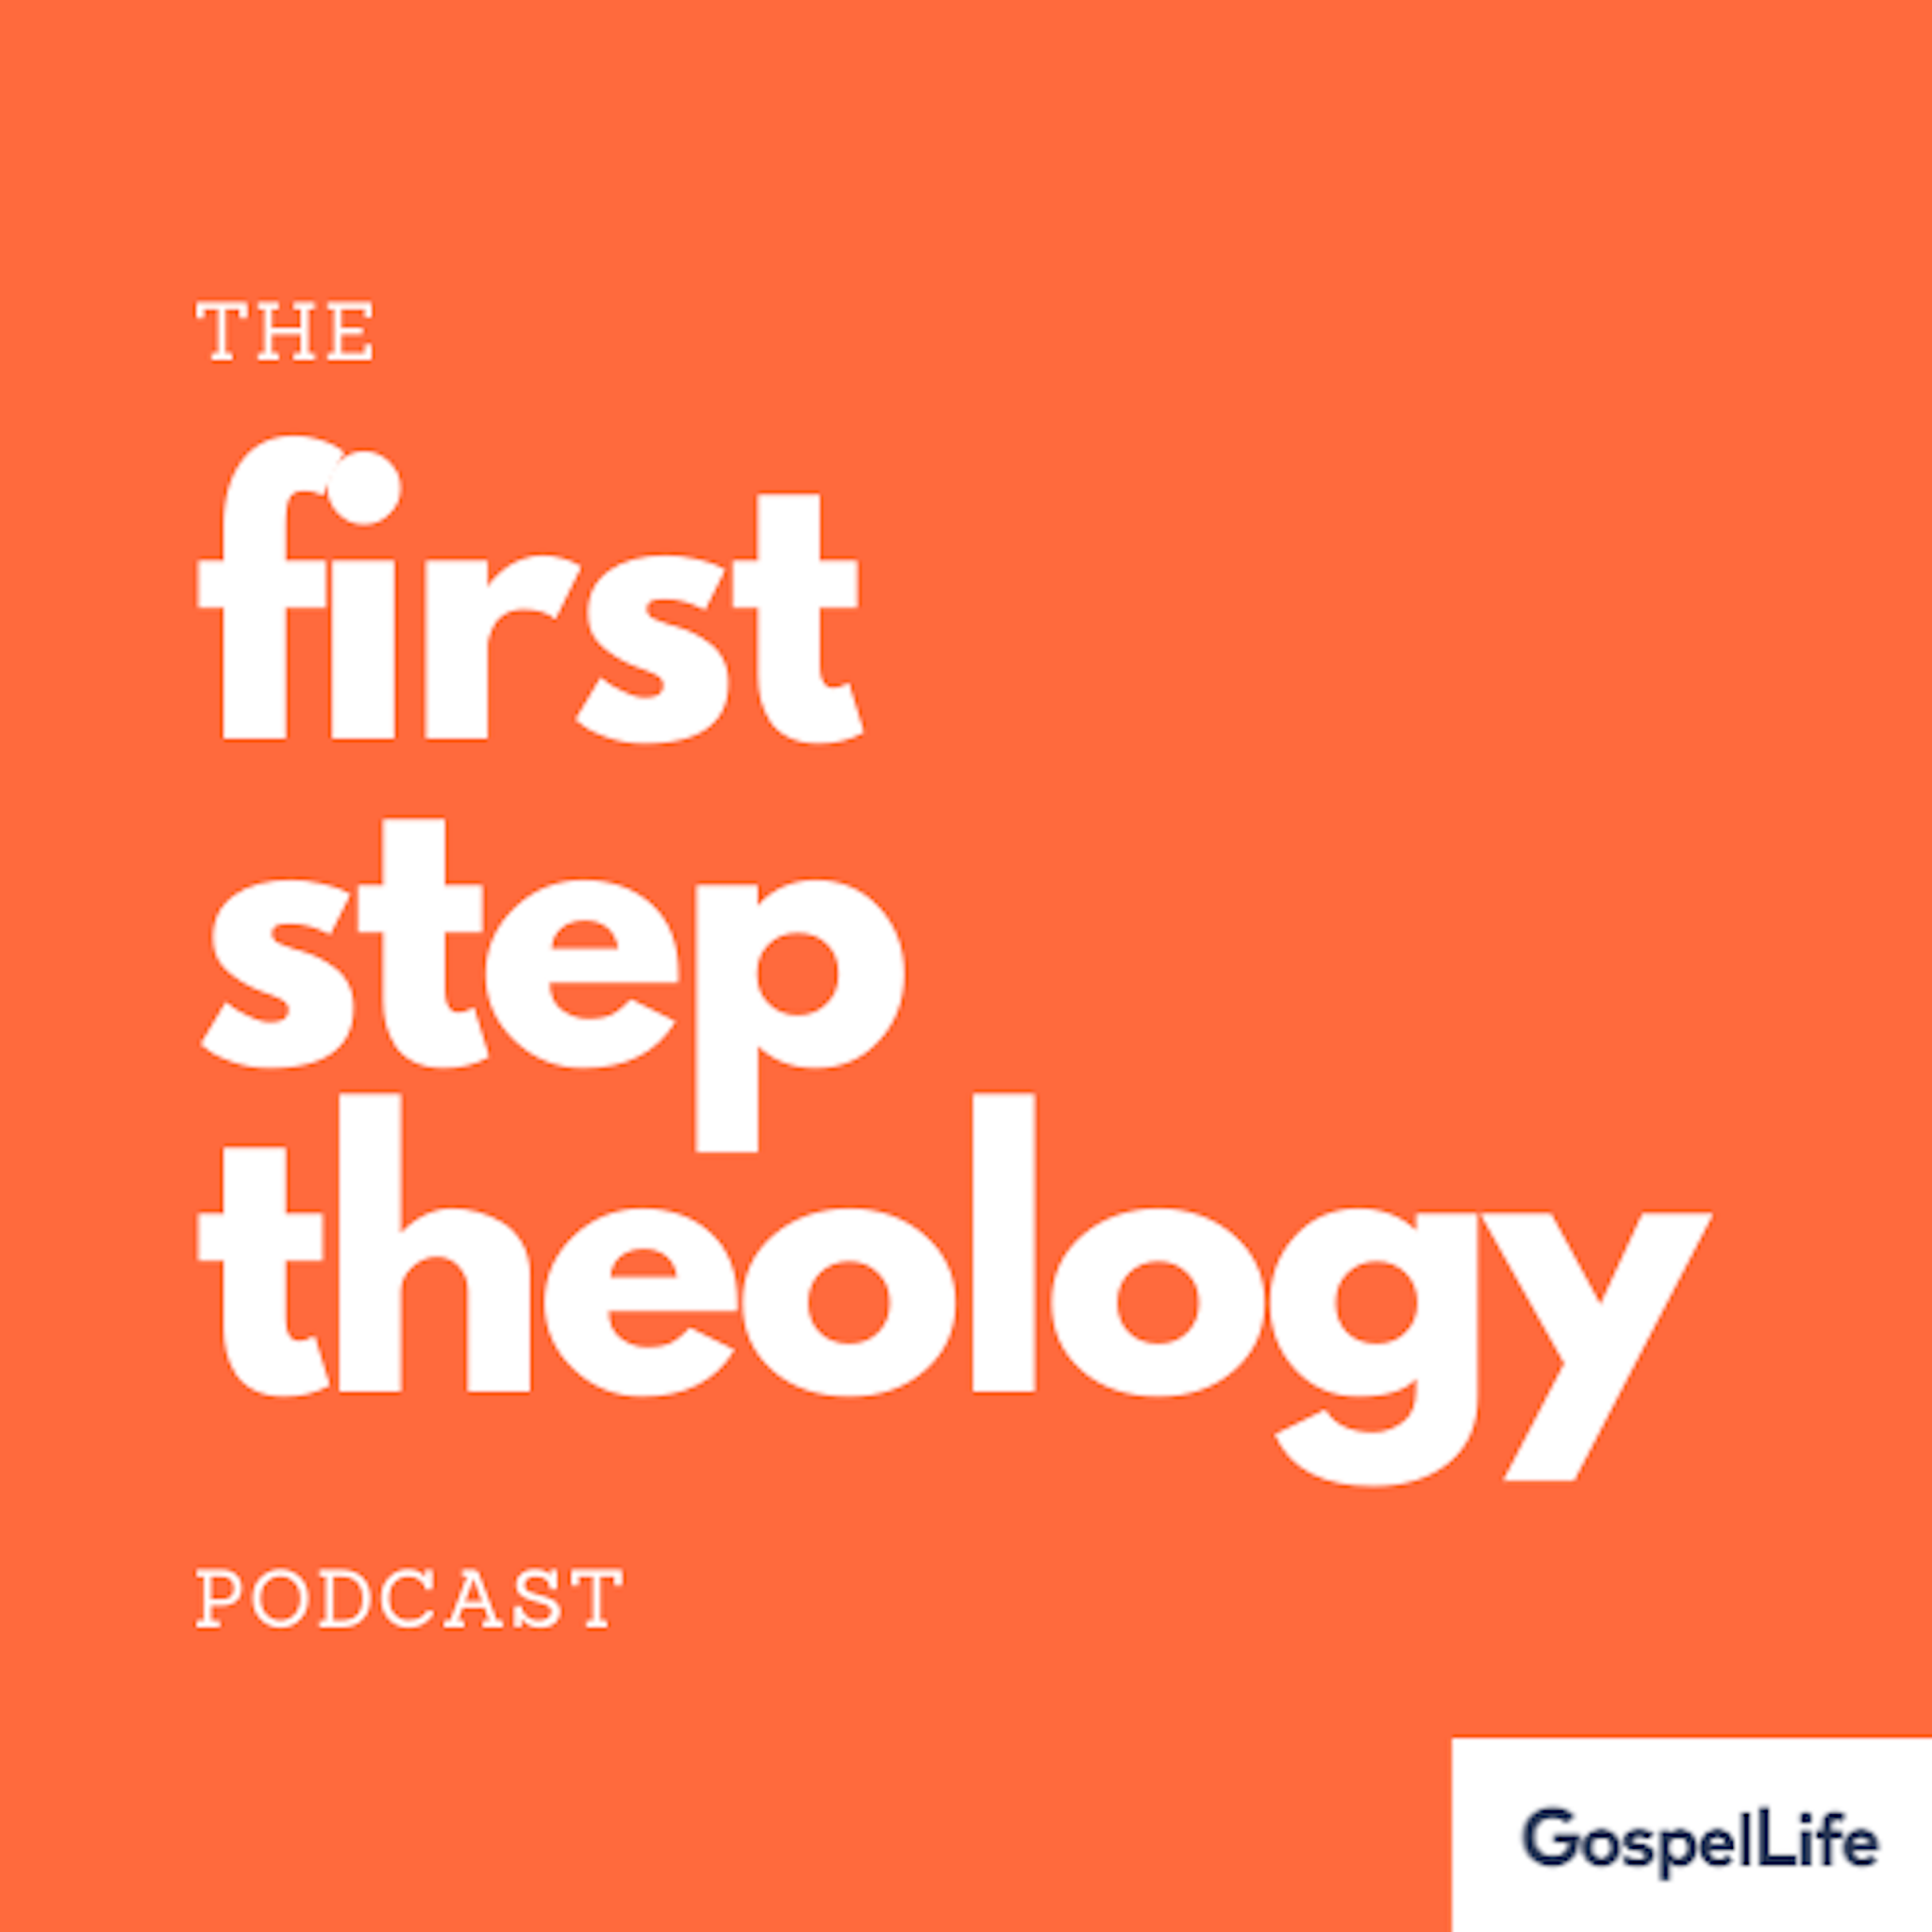 The First Step Theology Podcast